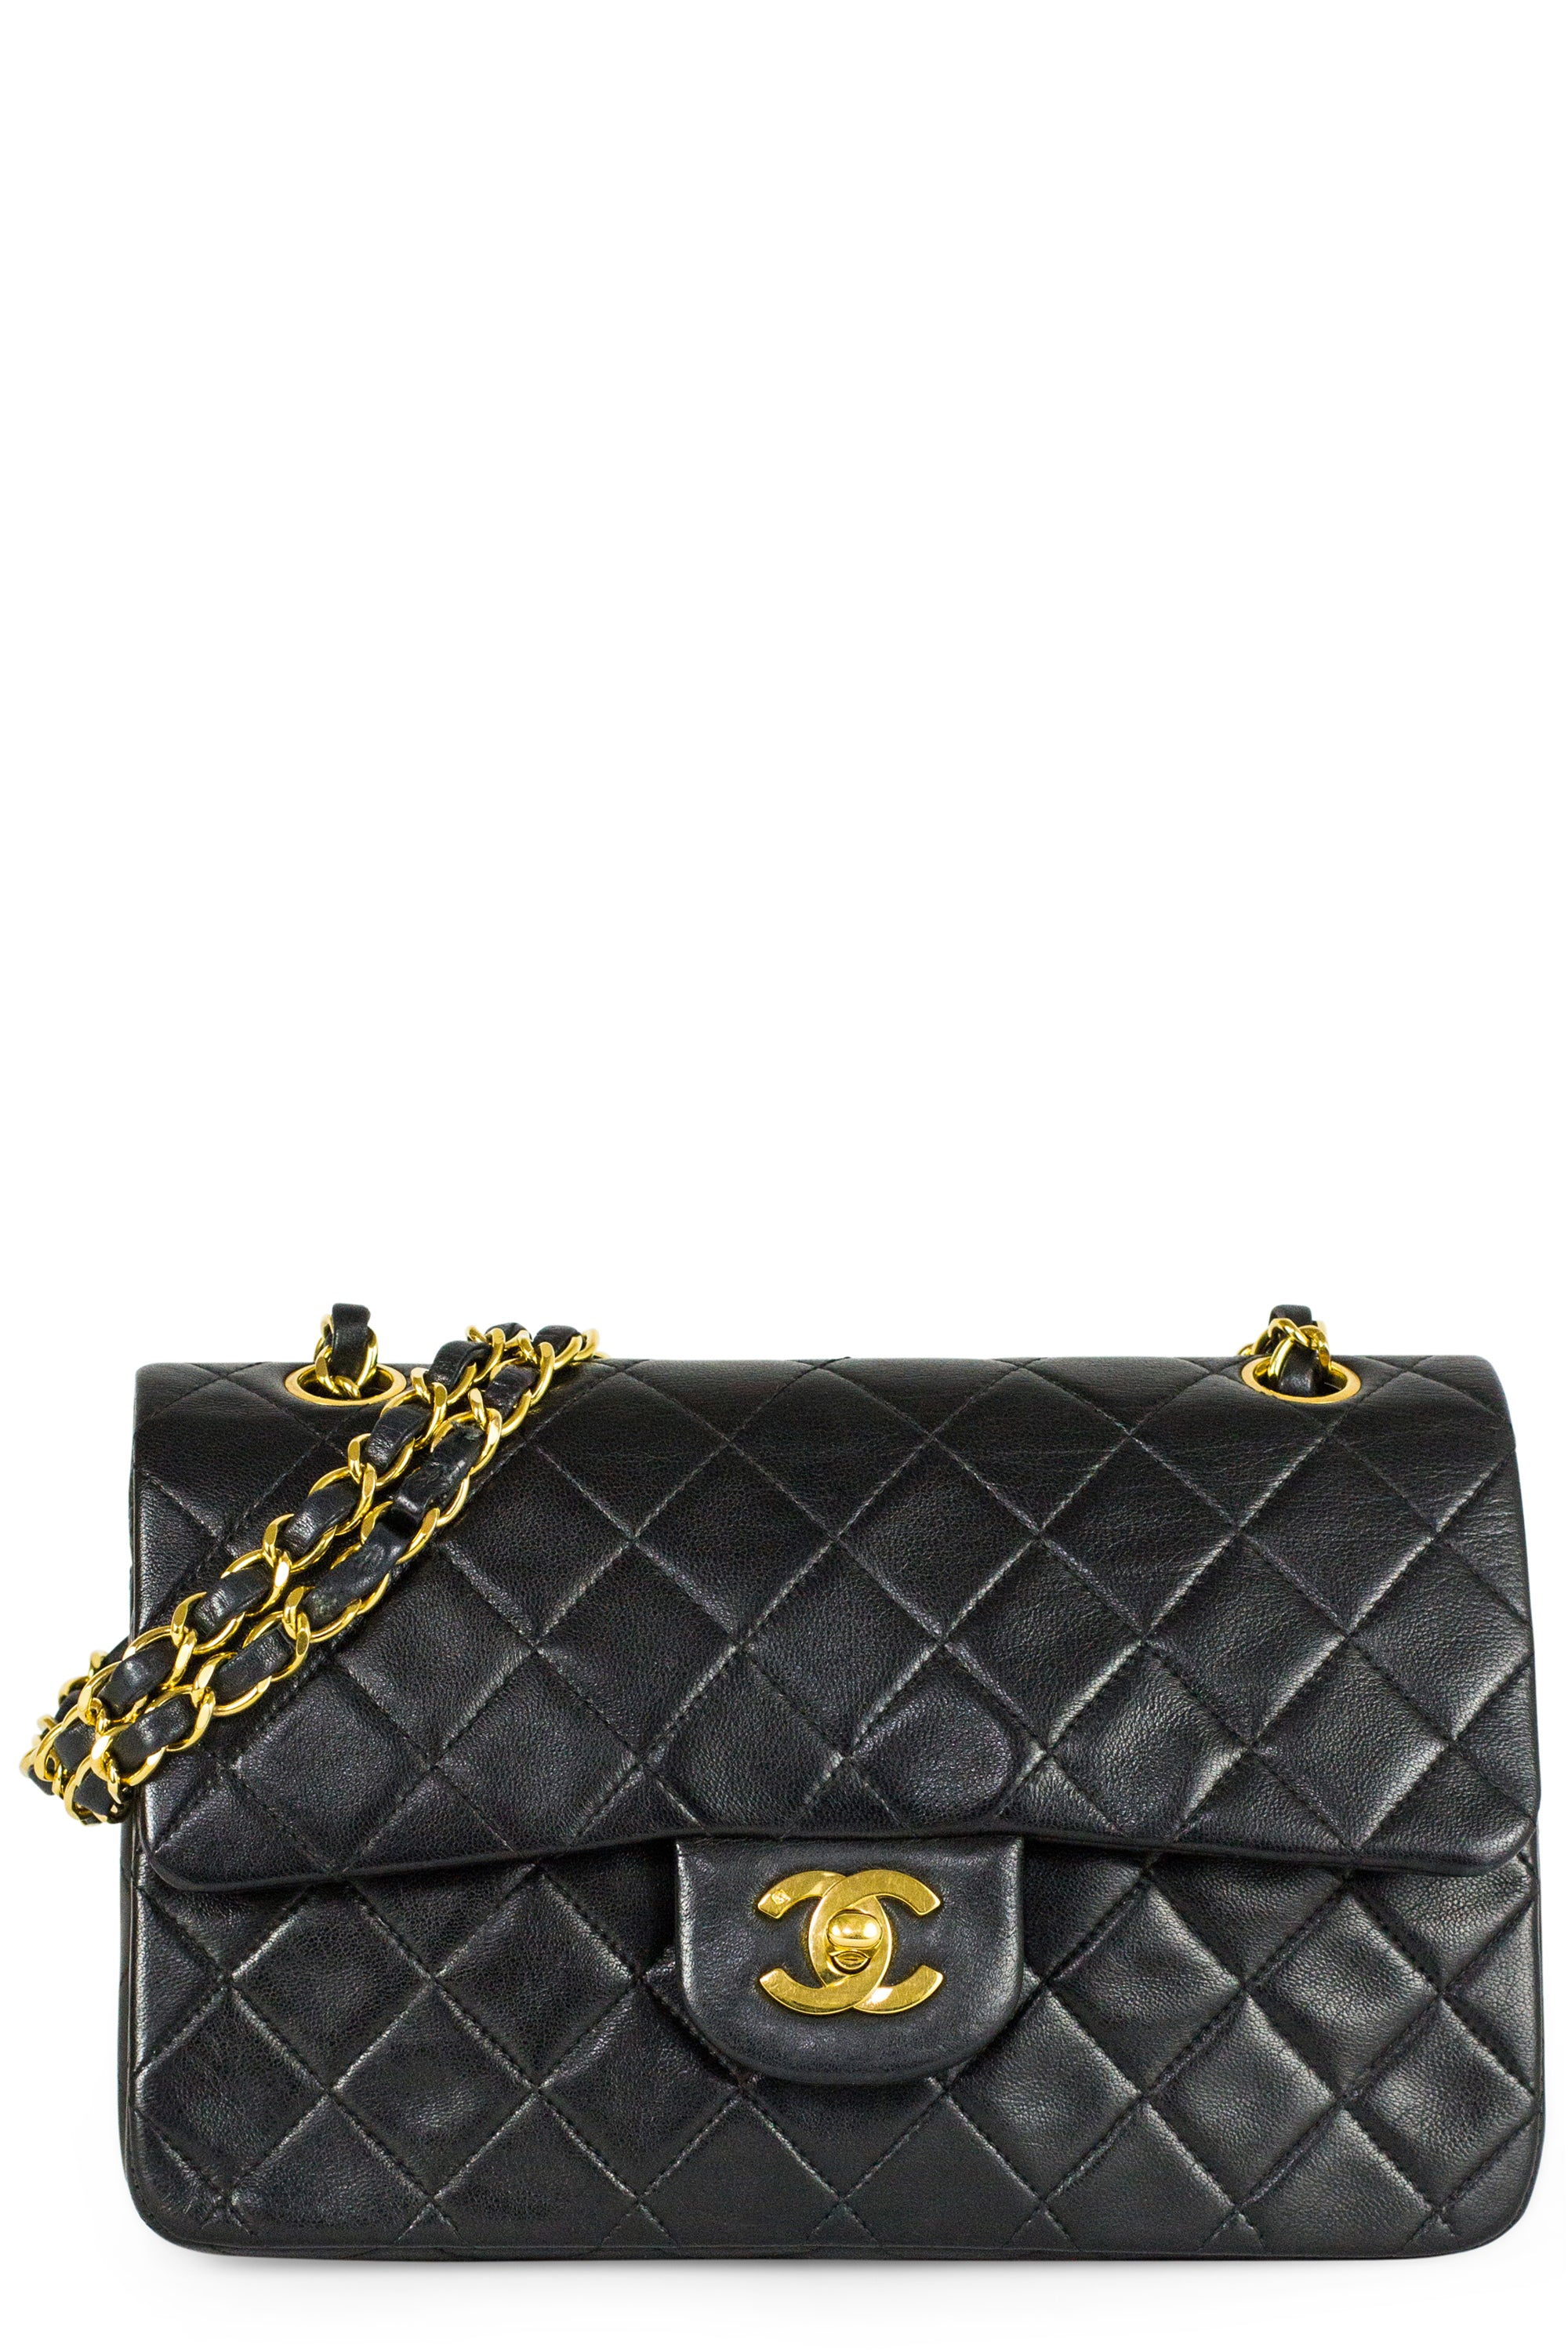 Chanel Double Flap Bag 2.55 Black Gold Hardware Frontansicht